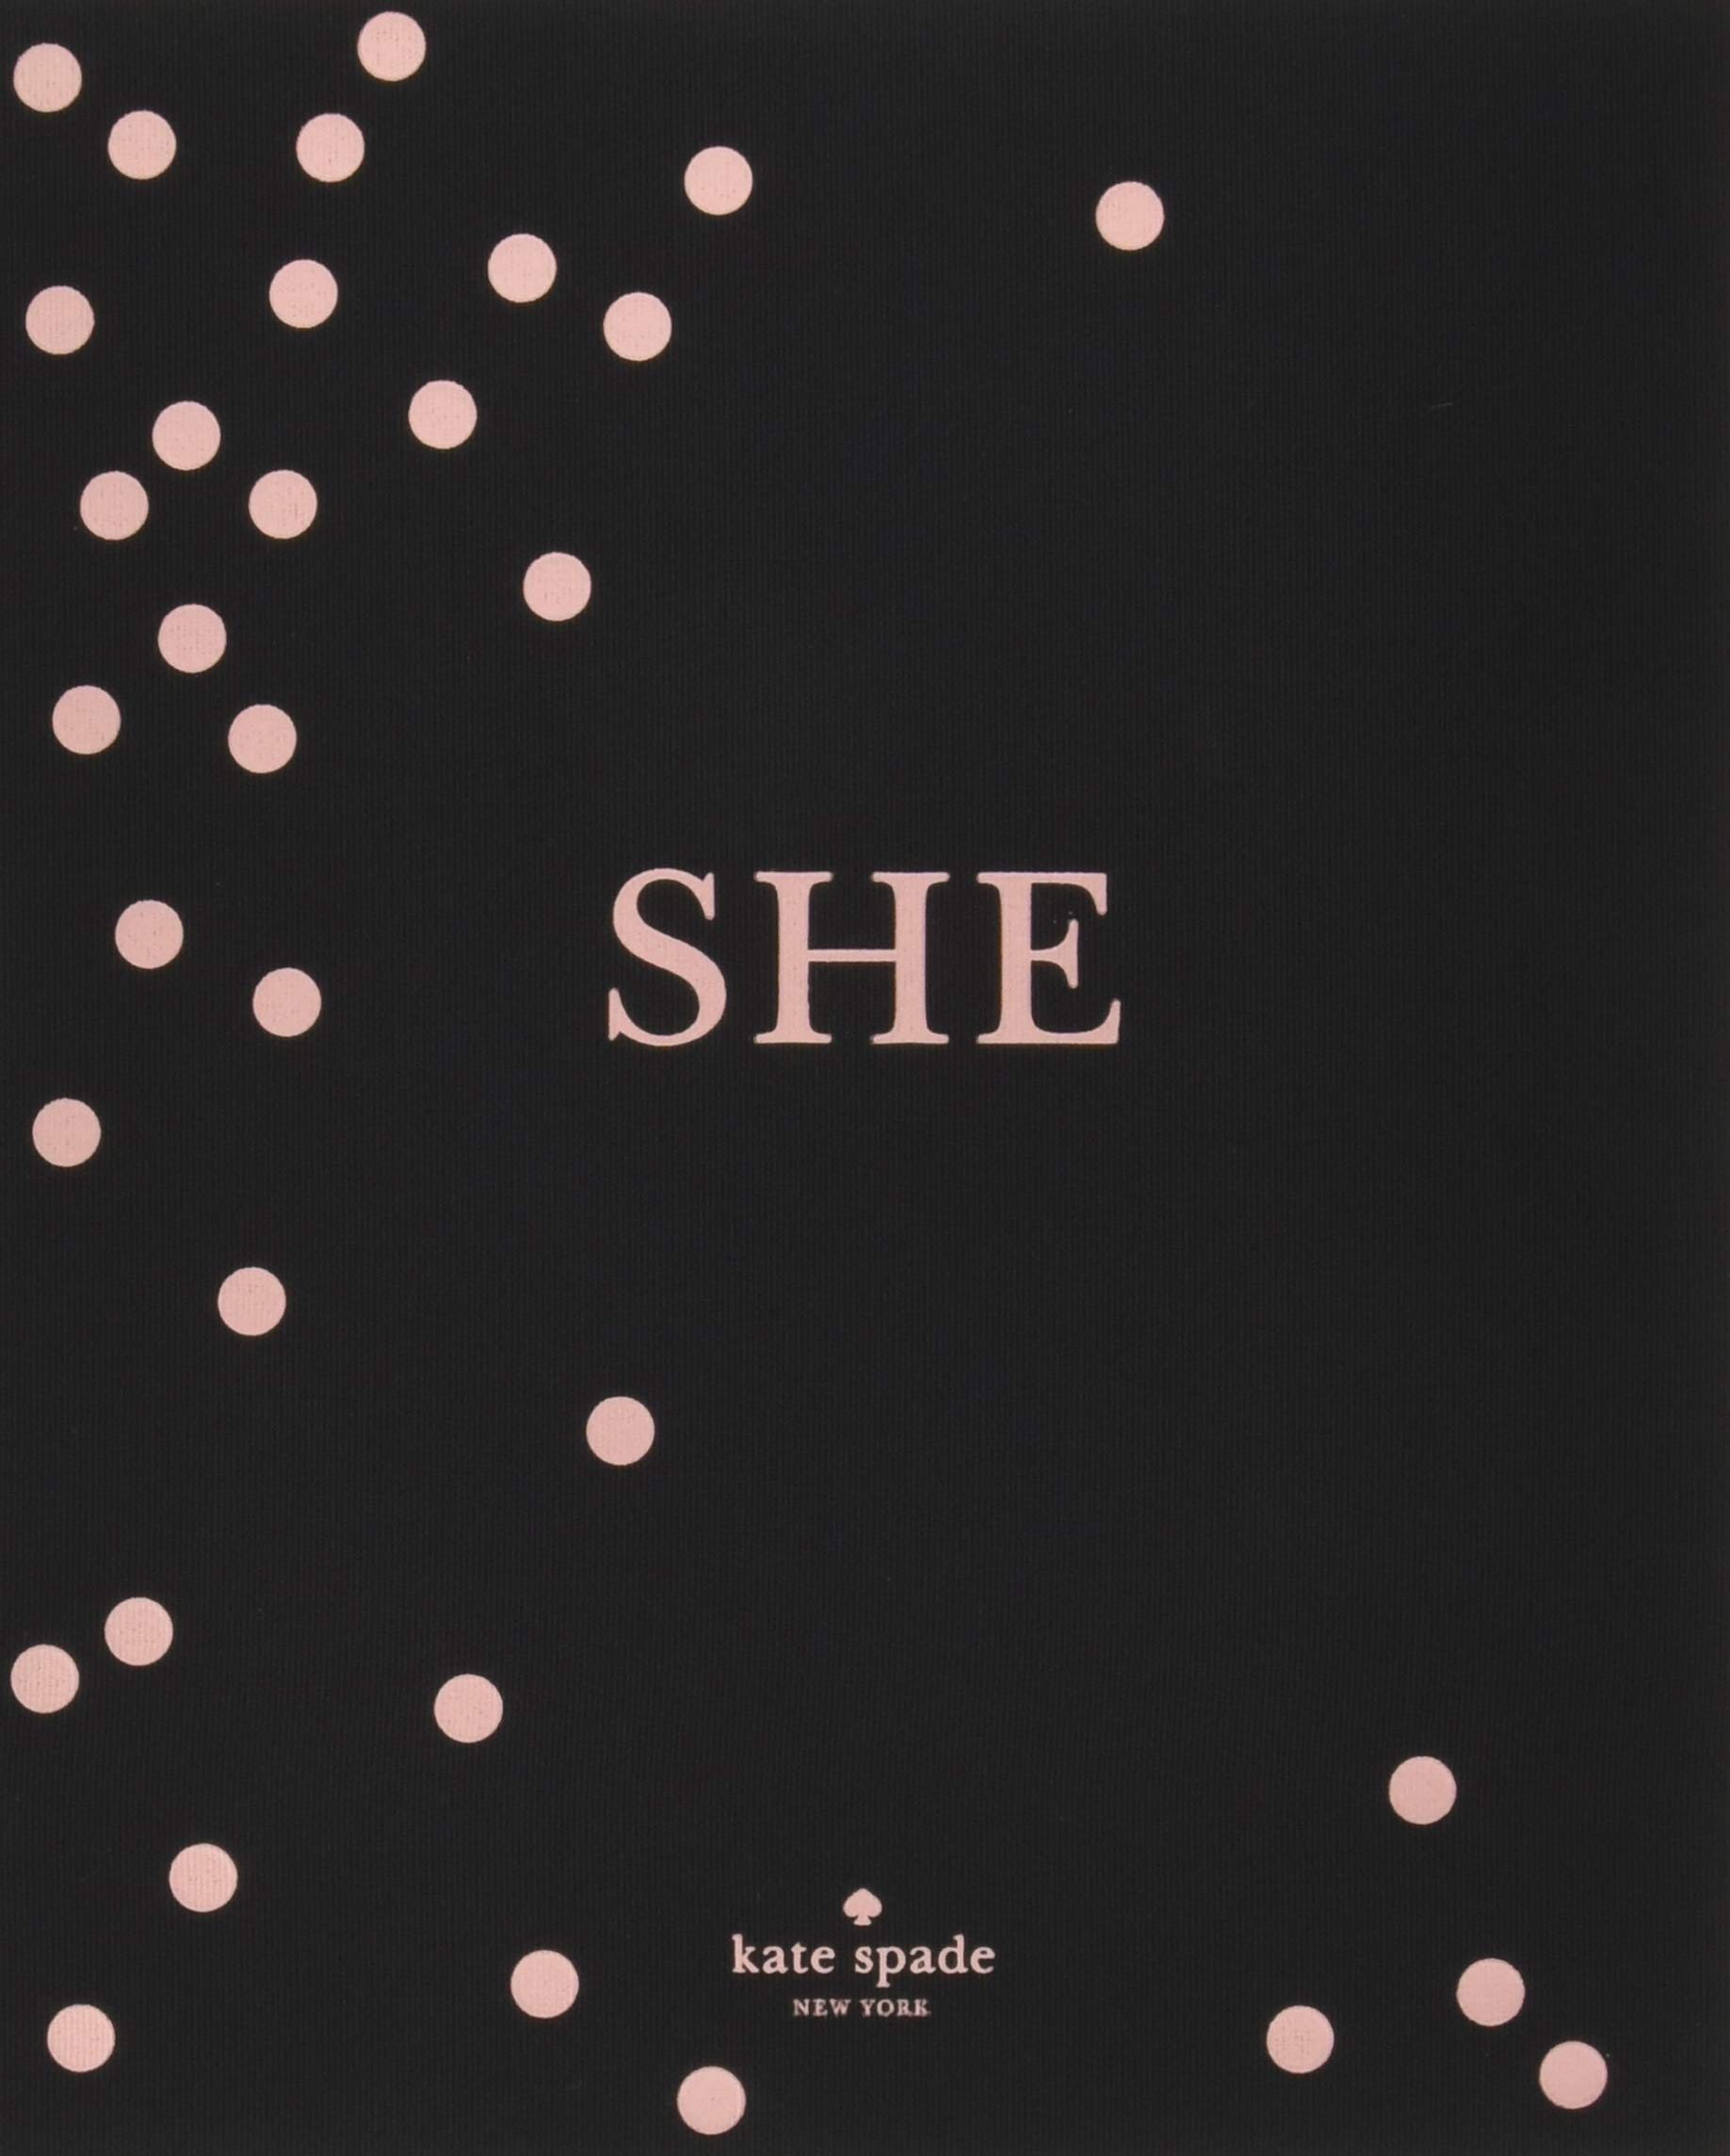 kate spade new york: SHE: muses, visionaries and madcap heroines by ABRAMS